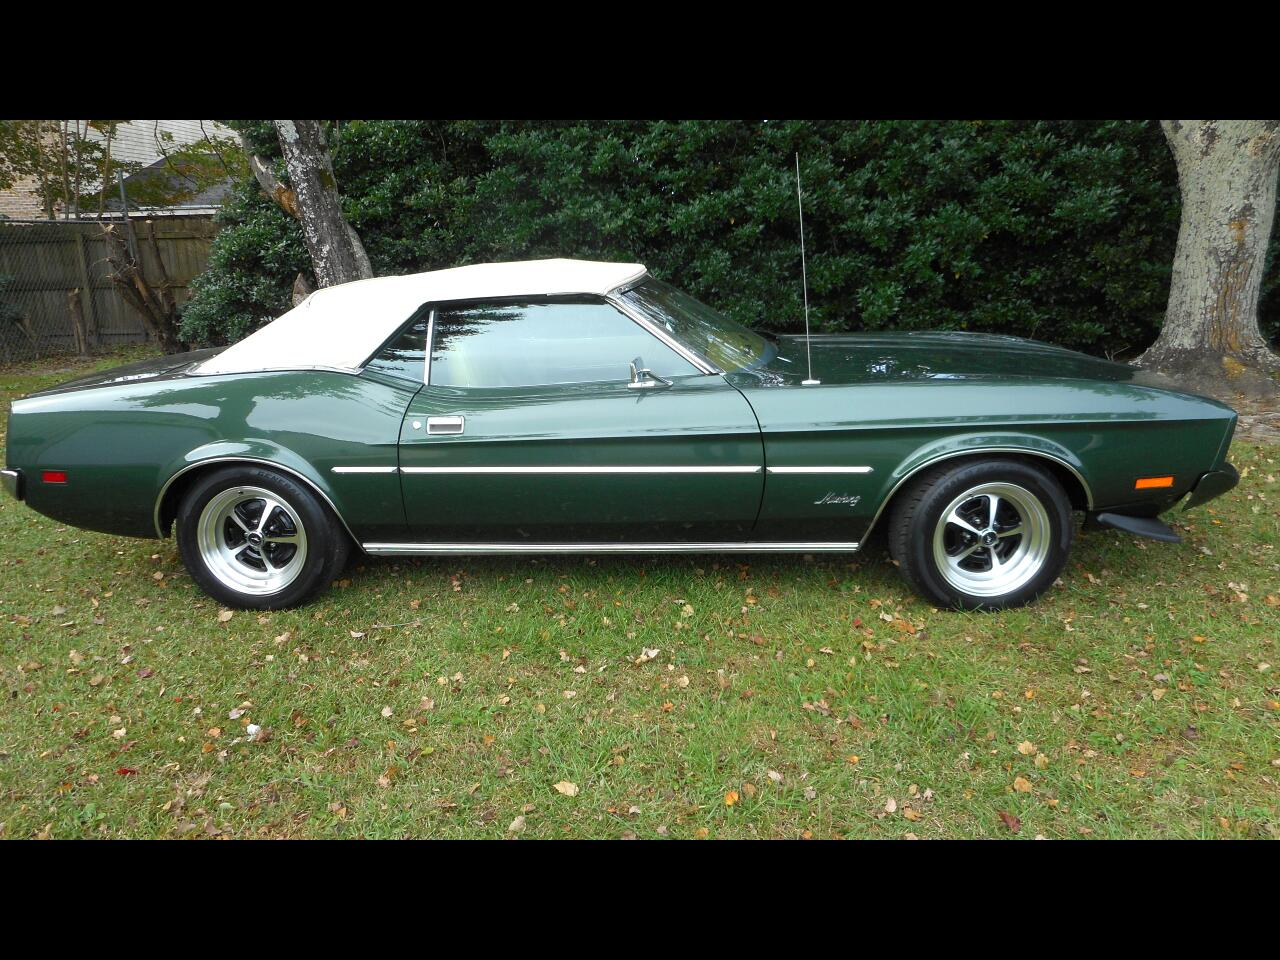 Ford Mustang 2dr Conv 1973